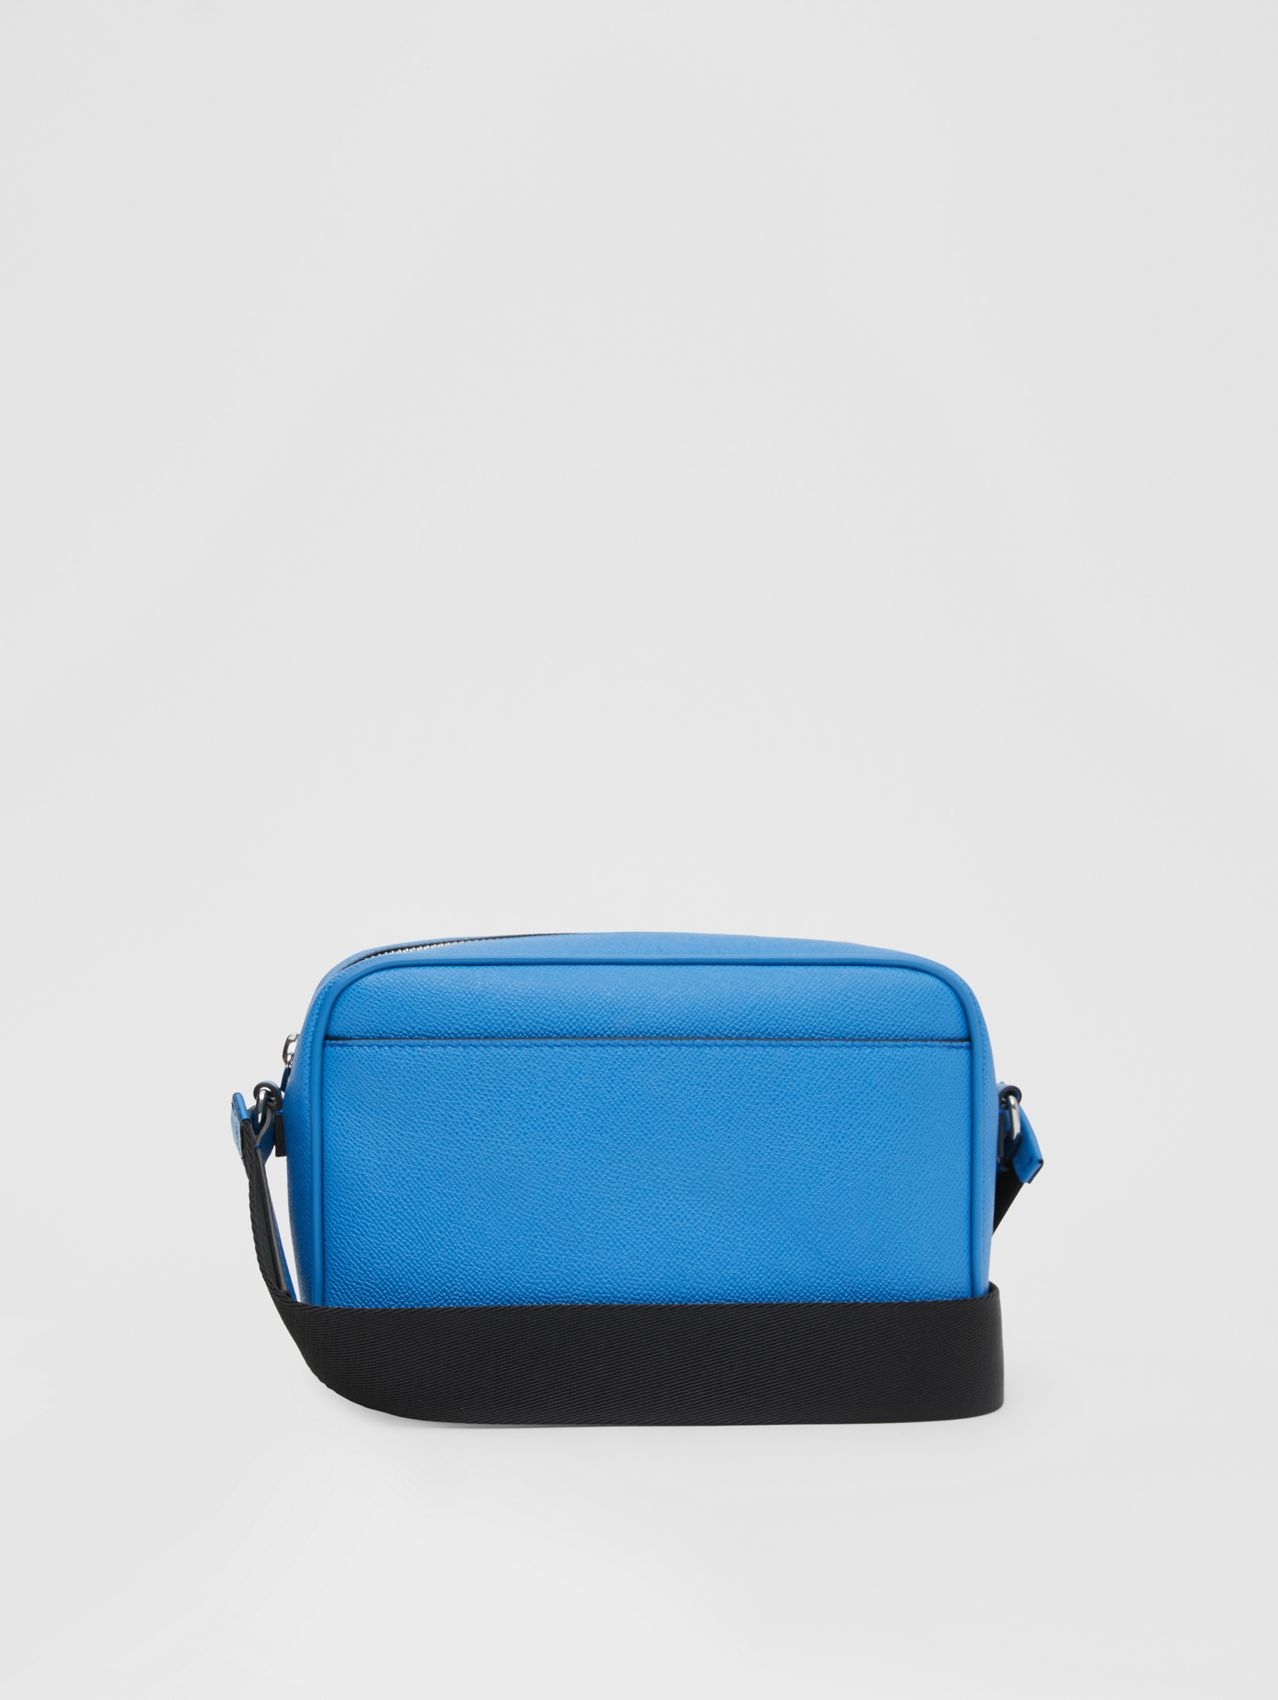 Grainy Leather Crossbody Bag in True Blue